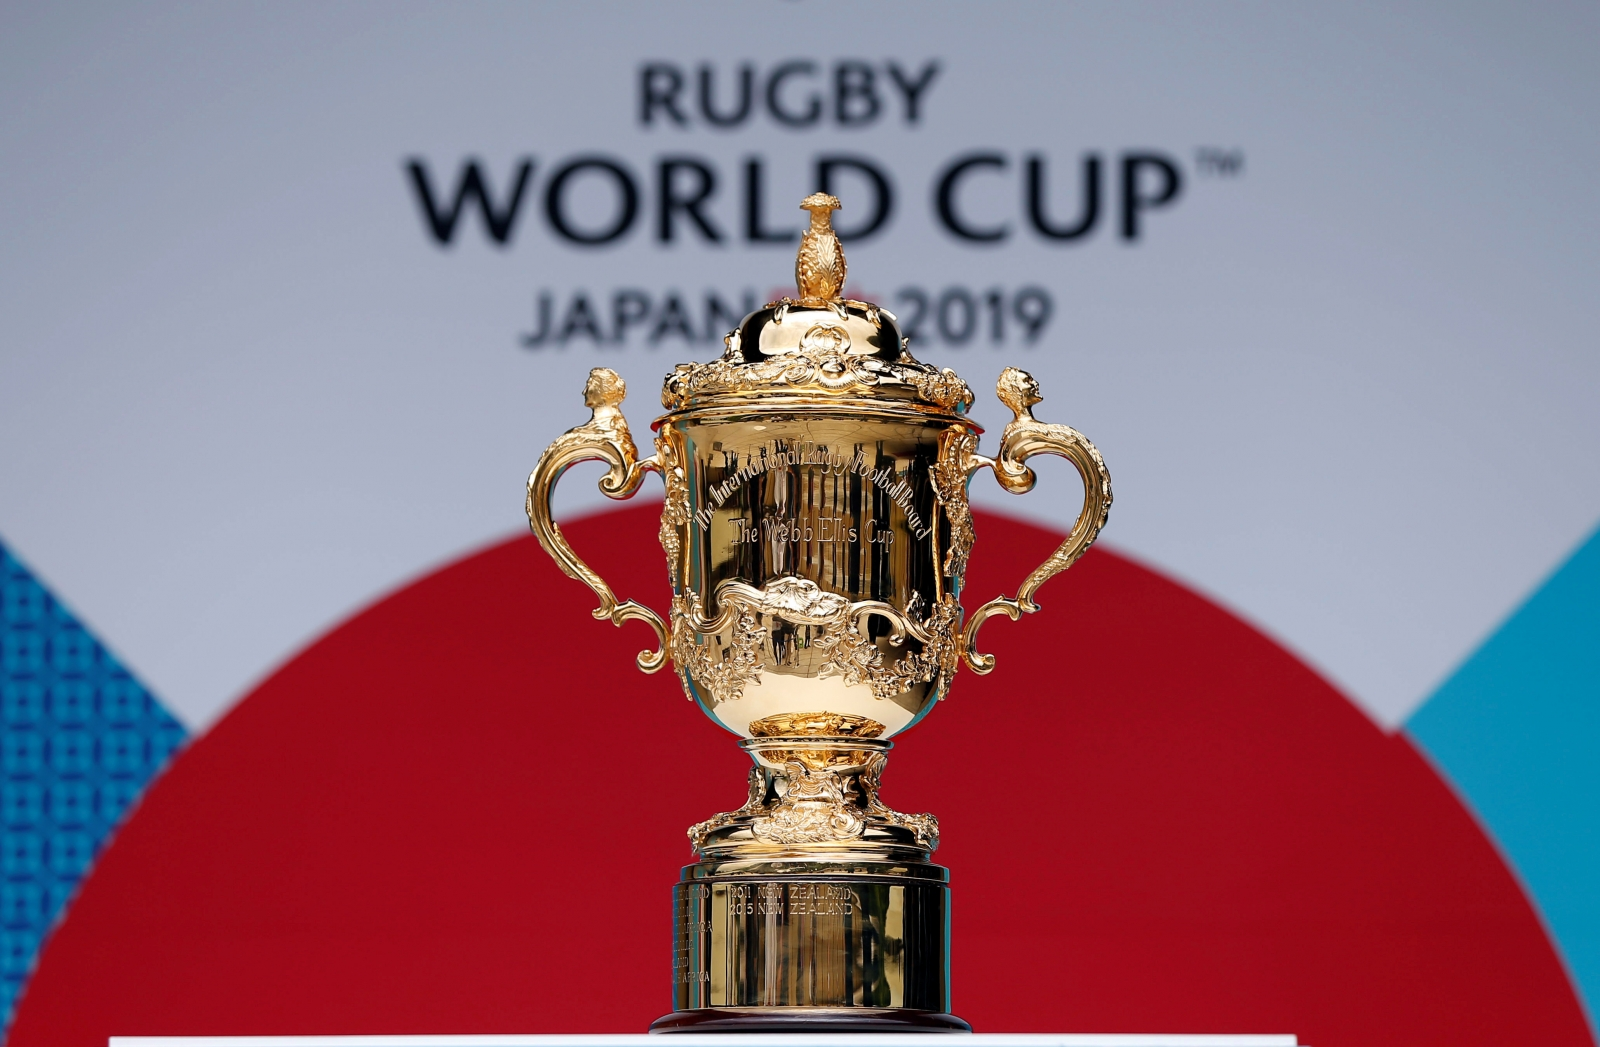 rugby world cup - photo #34